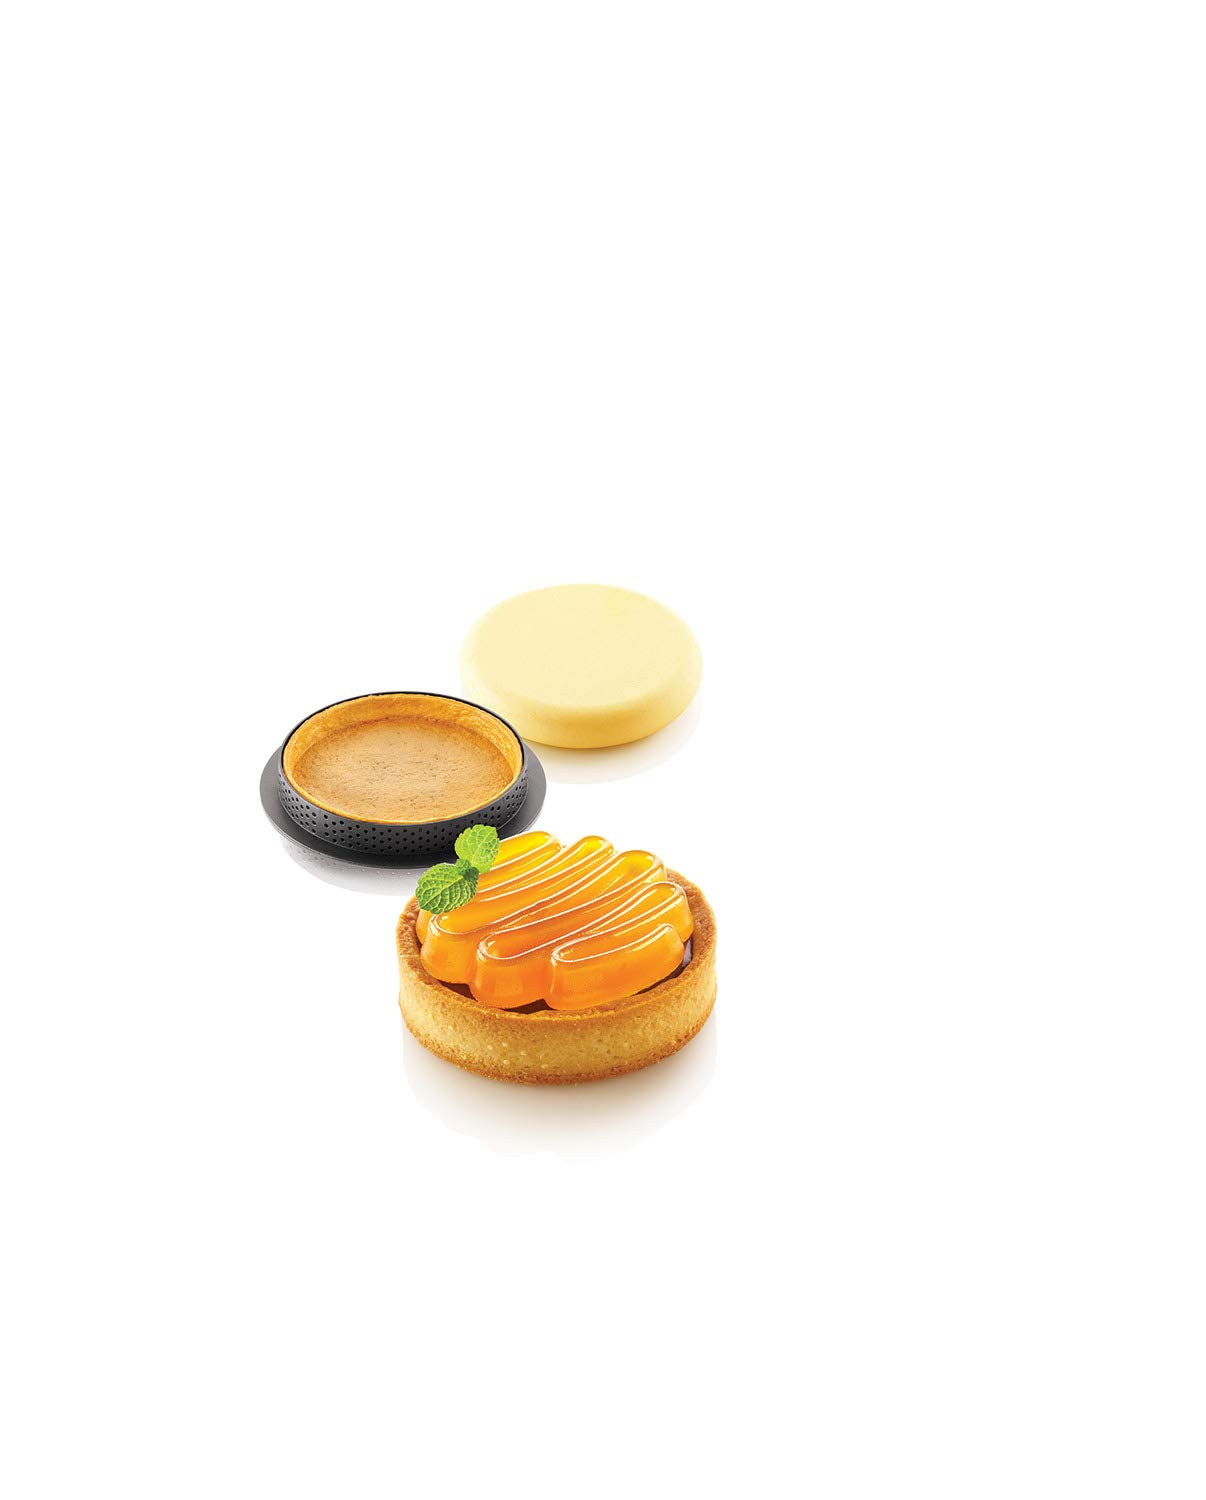 Silikomart''Kit Tarte Ring Honoré 80'' Silicone Mold with 8 Cavities, Each 2.75 Inch Diameter x 0.51 Inch High, Plus 8 Heat-Resistant Perforated Plastic Round Cutting Rings by Silikomart (Image #6)